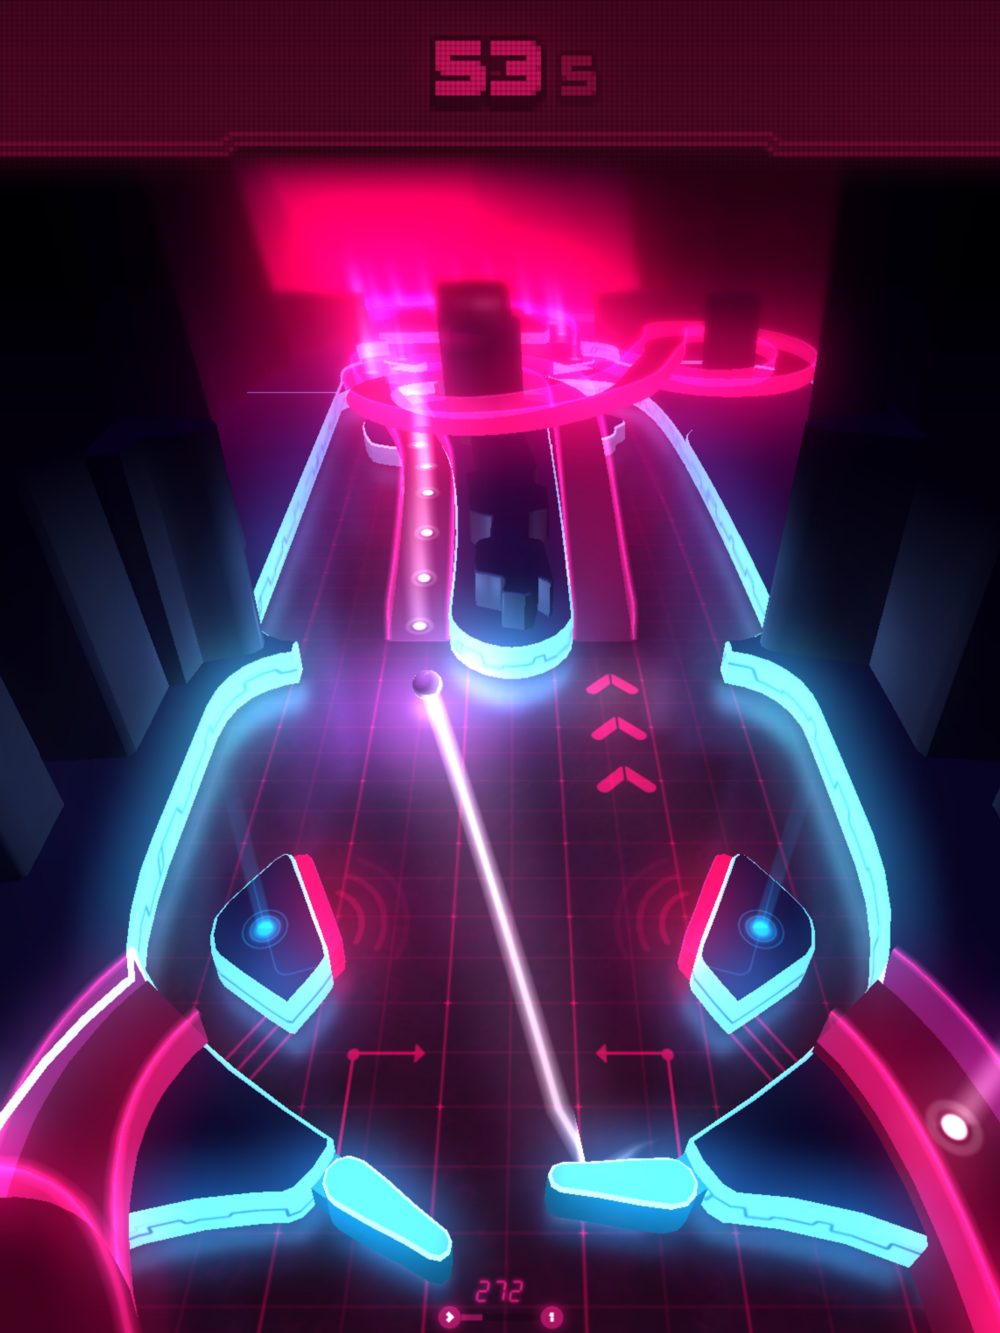 PinOut! is perpetual pinball — Mediocre's new take on the pinball genre.